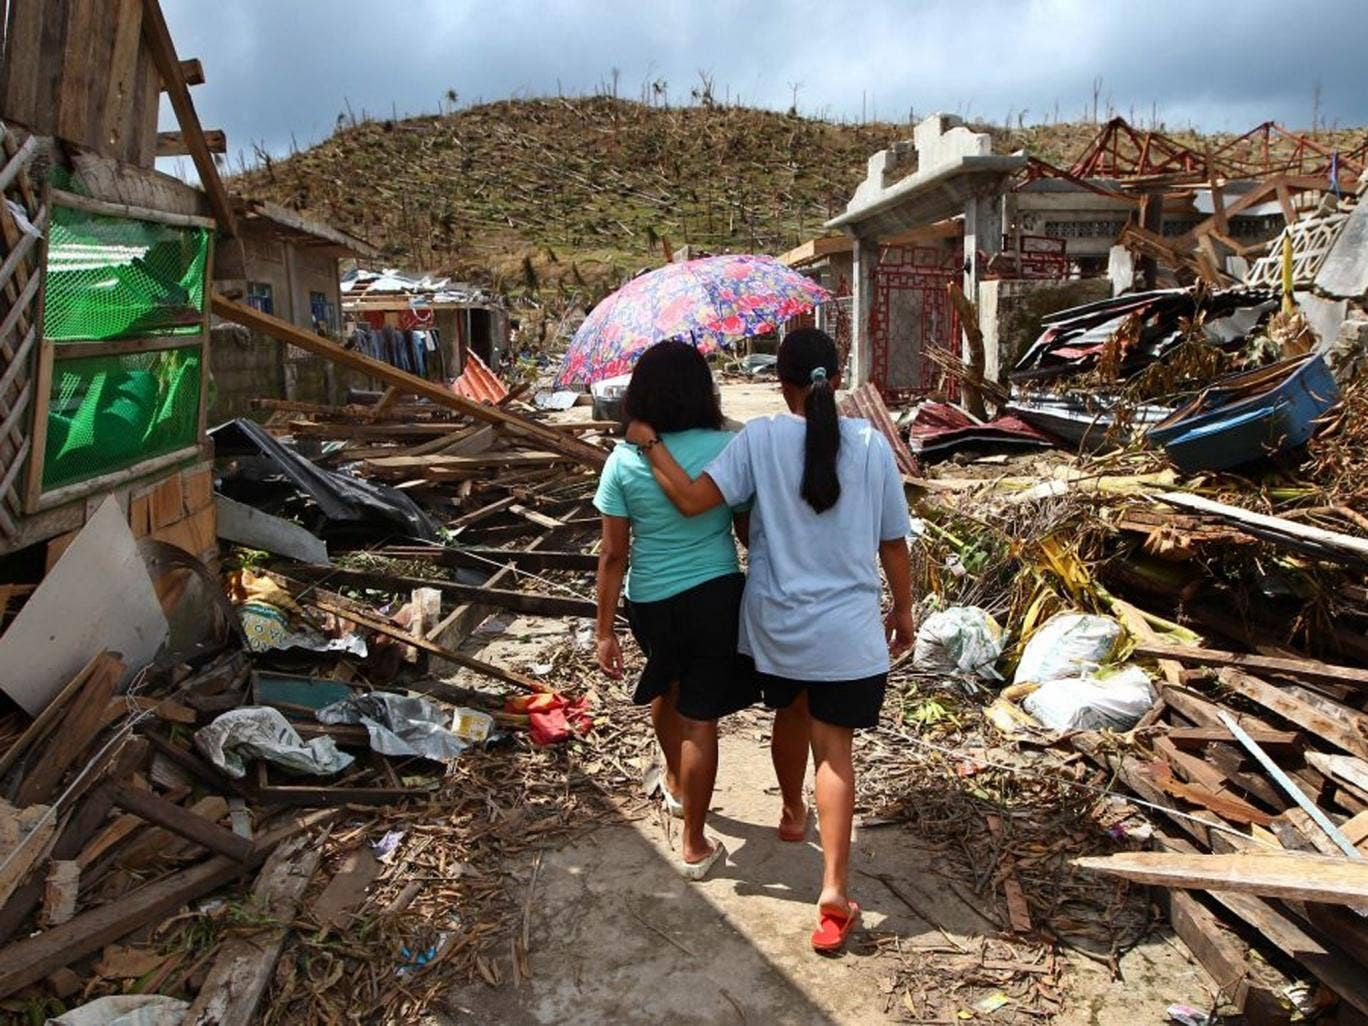 Typhoon Haiyan survivors walk amid ruins of buildings in Maraboth, Philippines